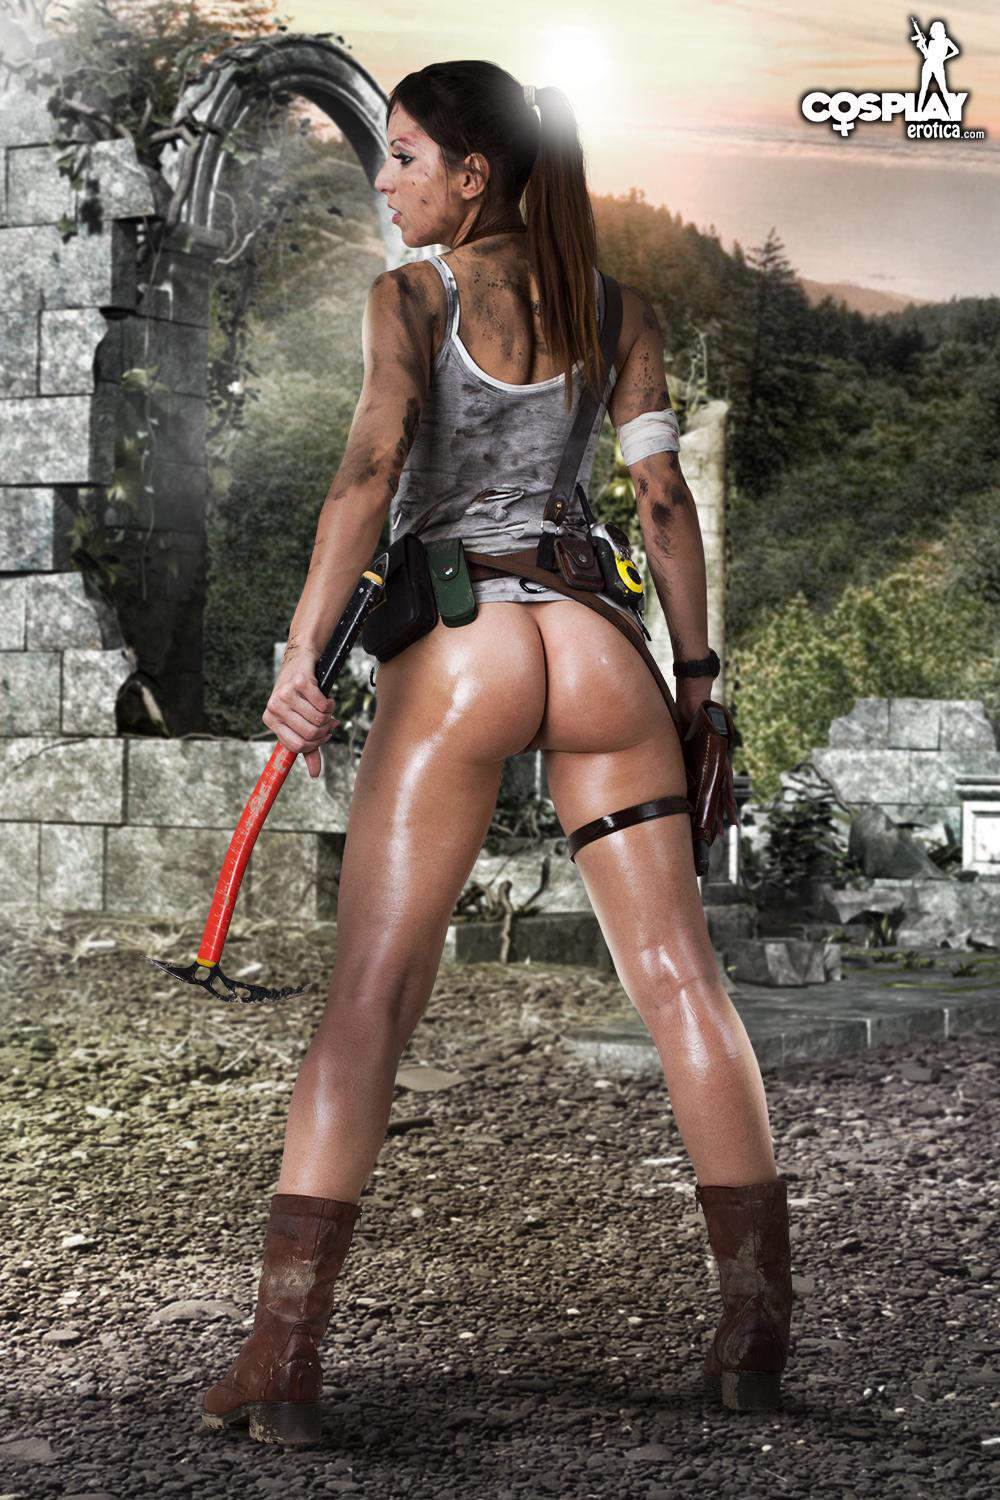 Laracroft erotic pic porn video